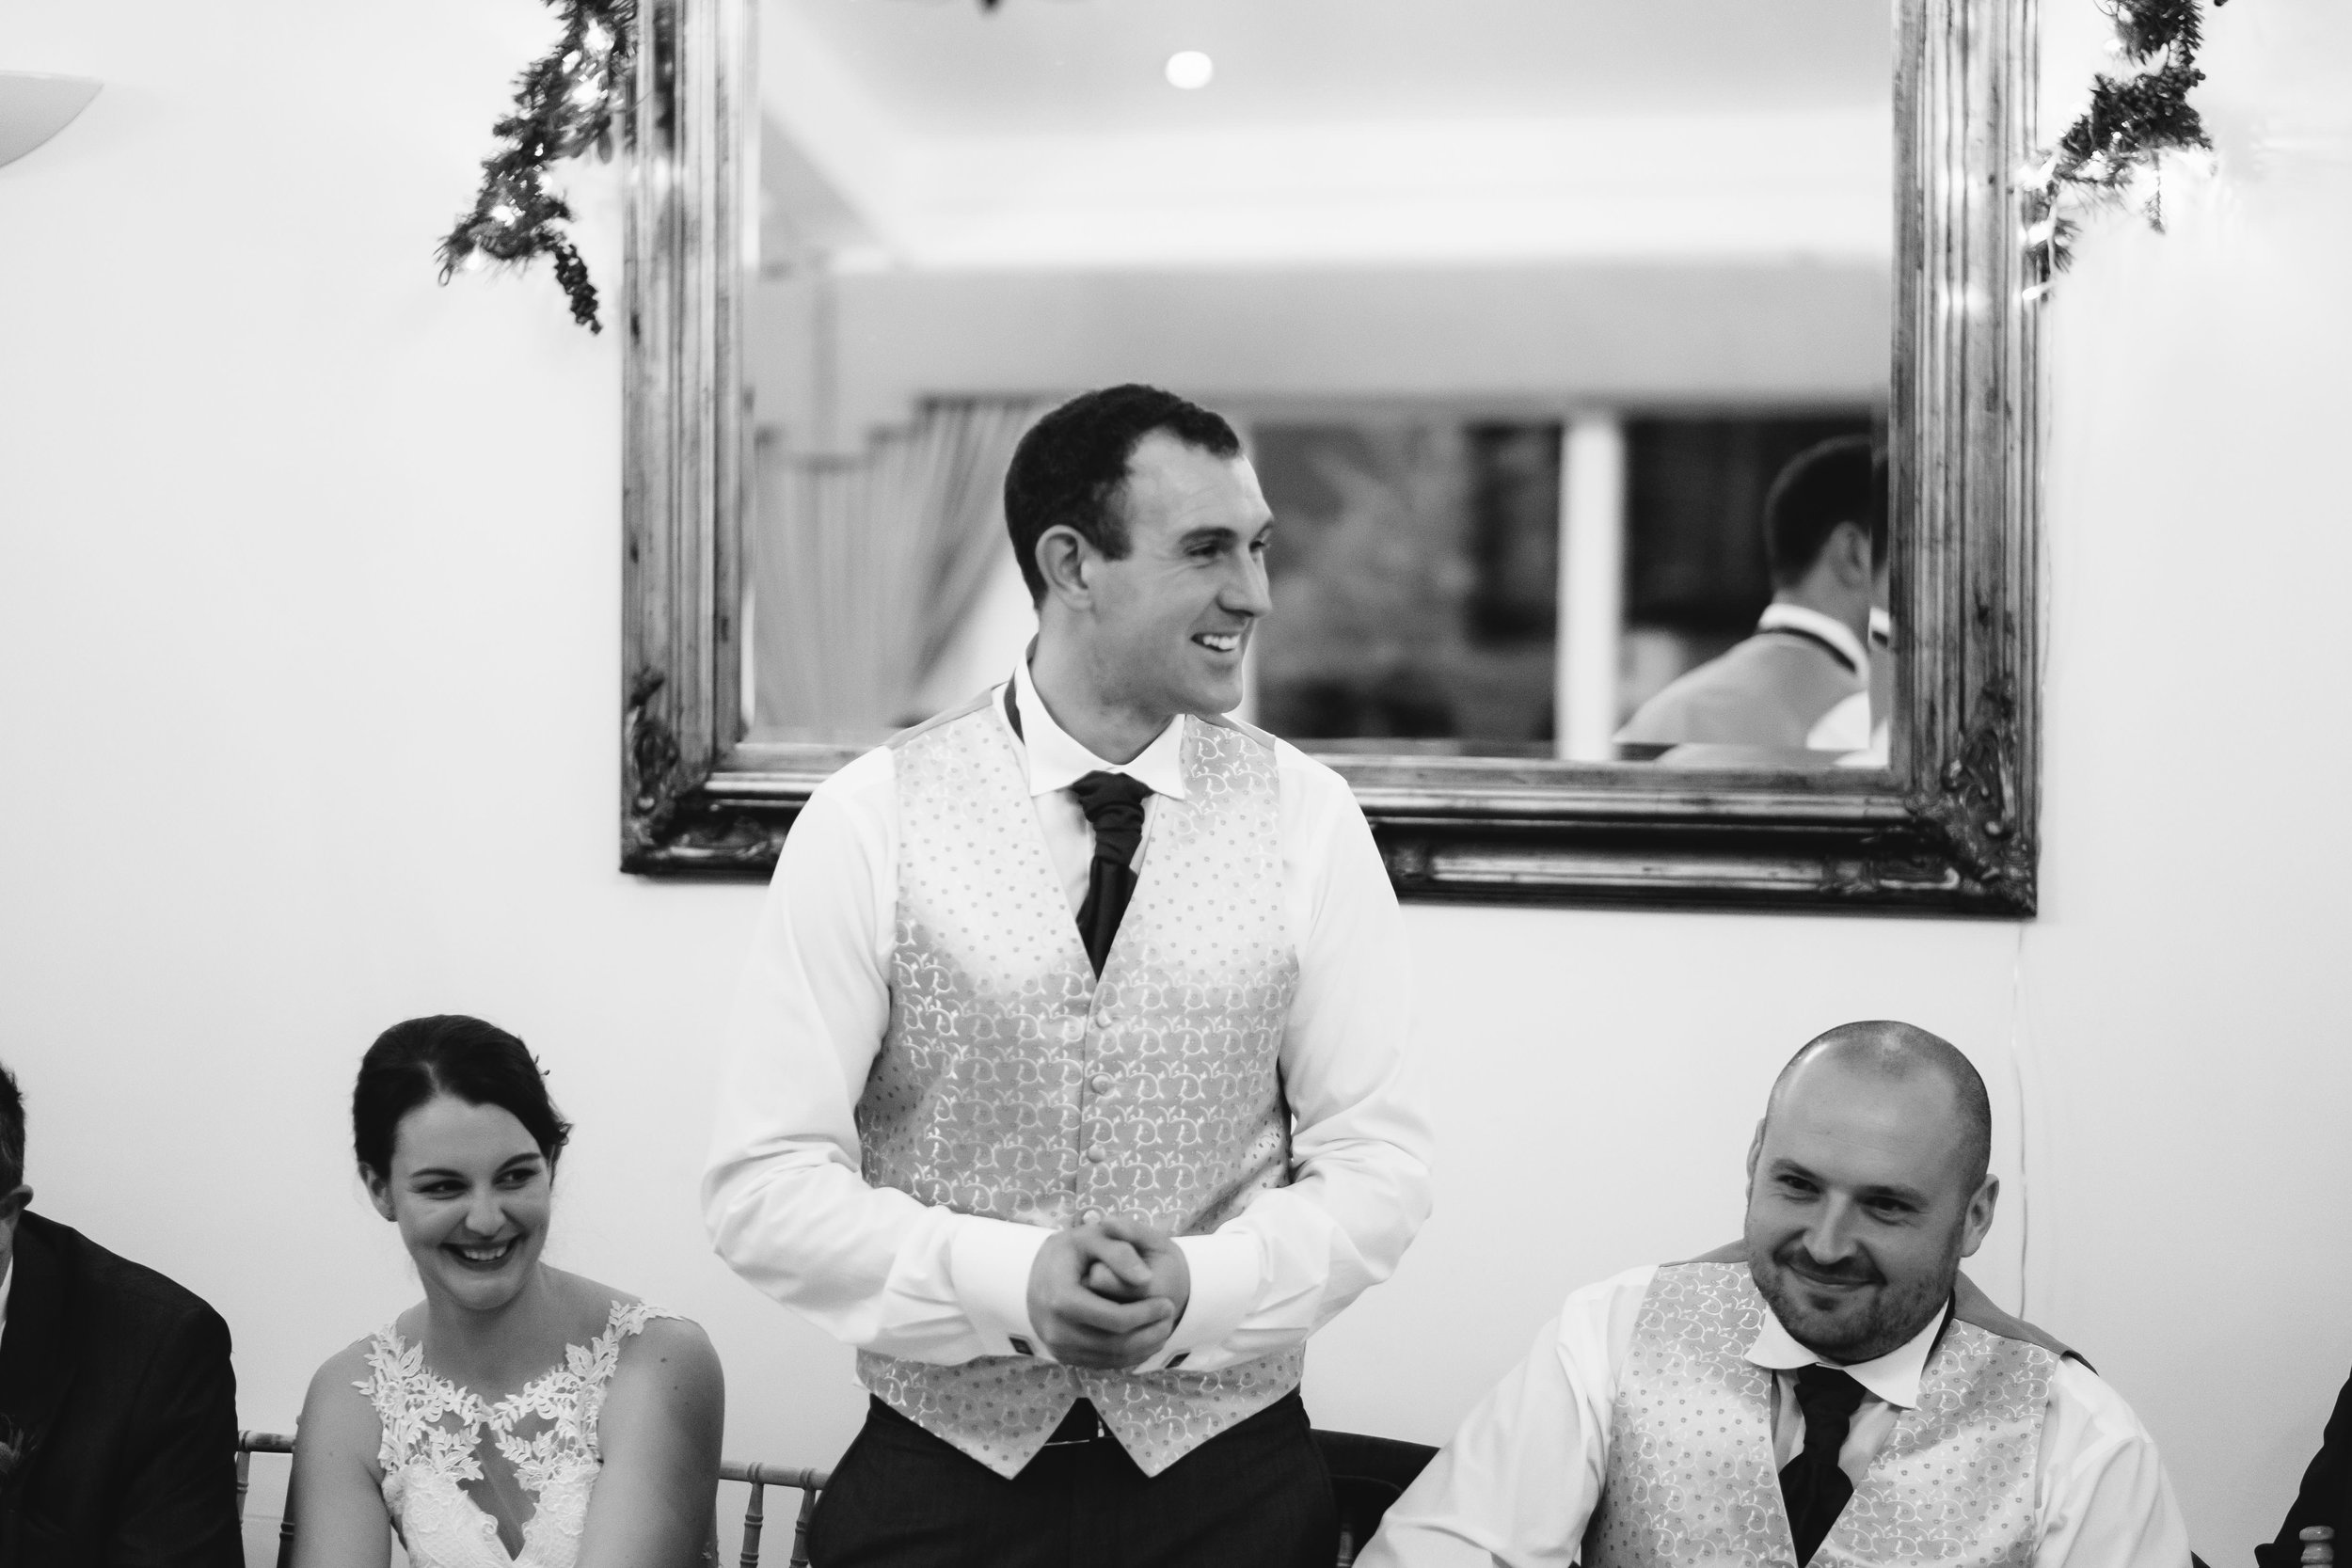 A black and white photo of the groom giving a wedding speech